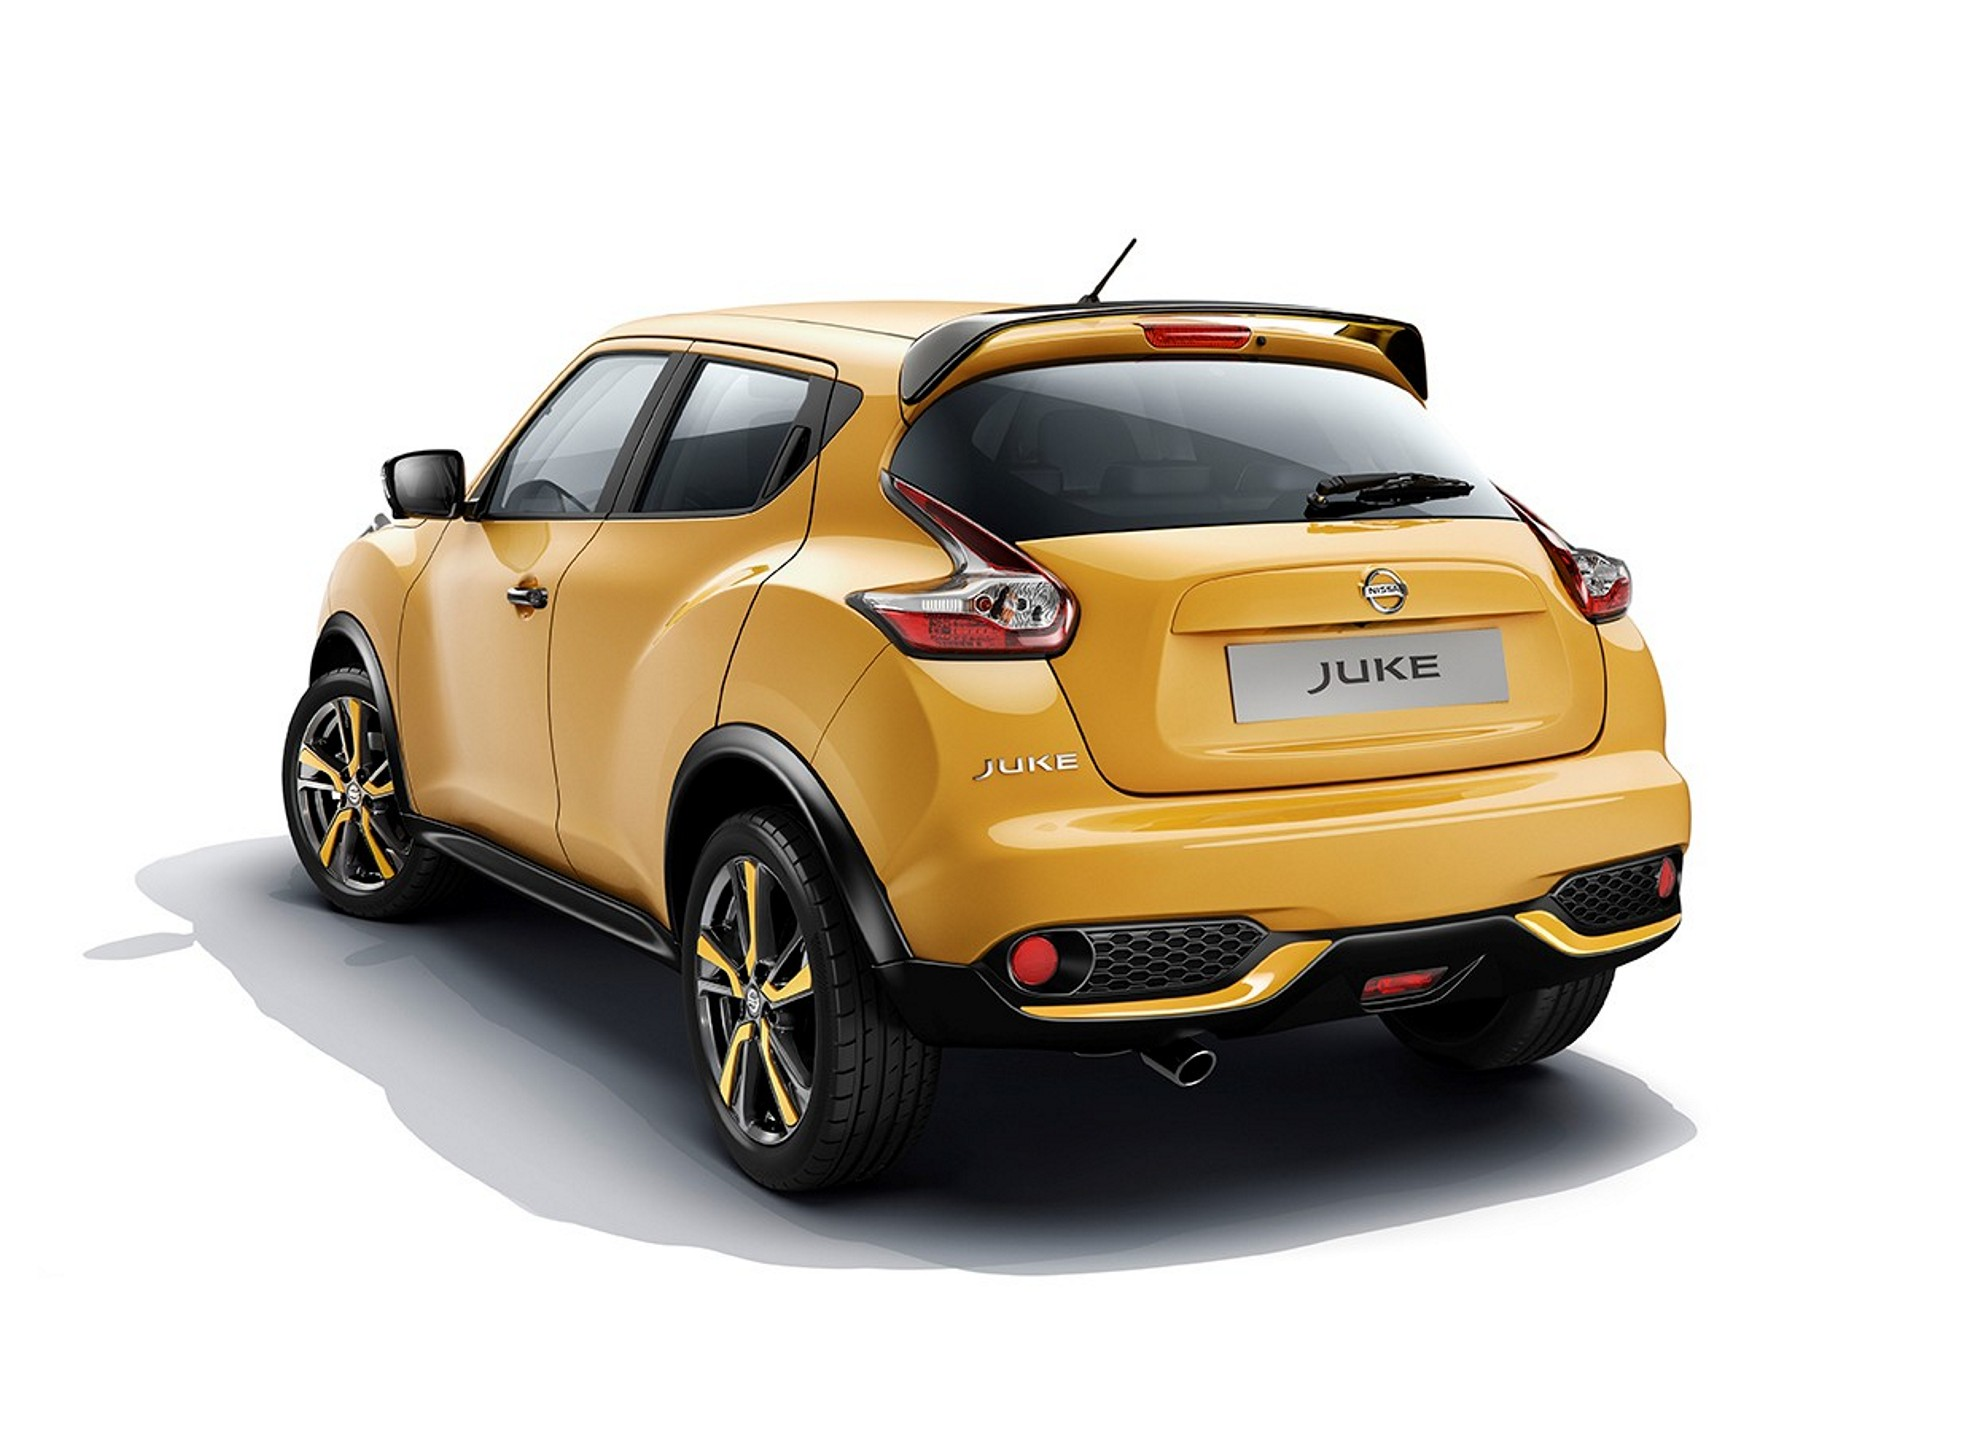 nissan juke makes debut in geneva. Black Bedroom Furniture Sets. Home Design Ideas